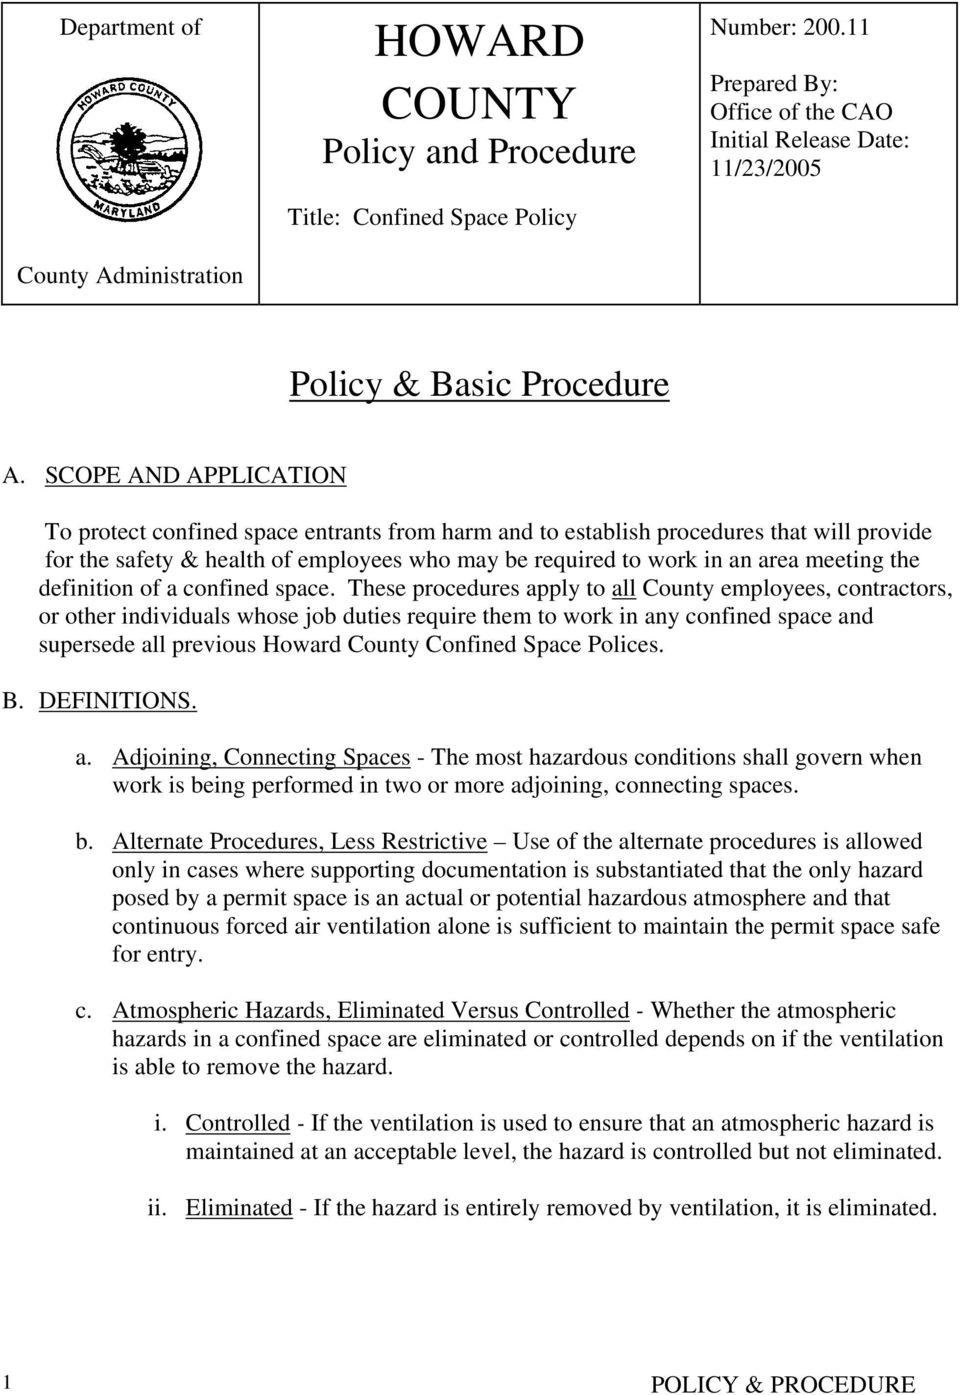 what is policy definition pdf